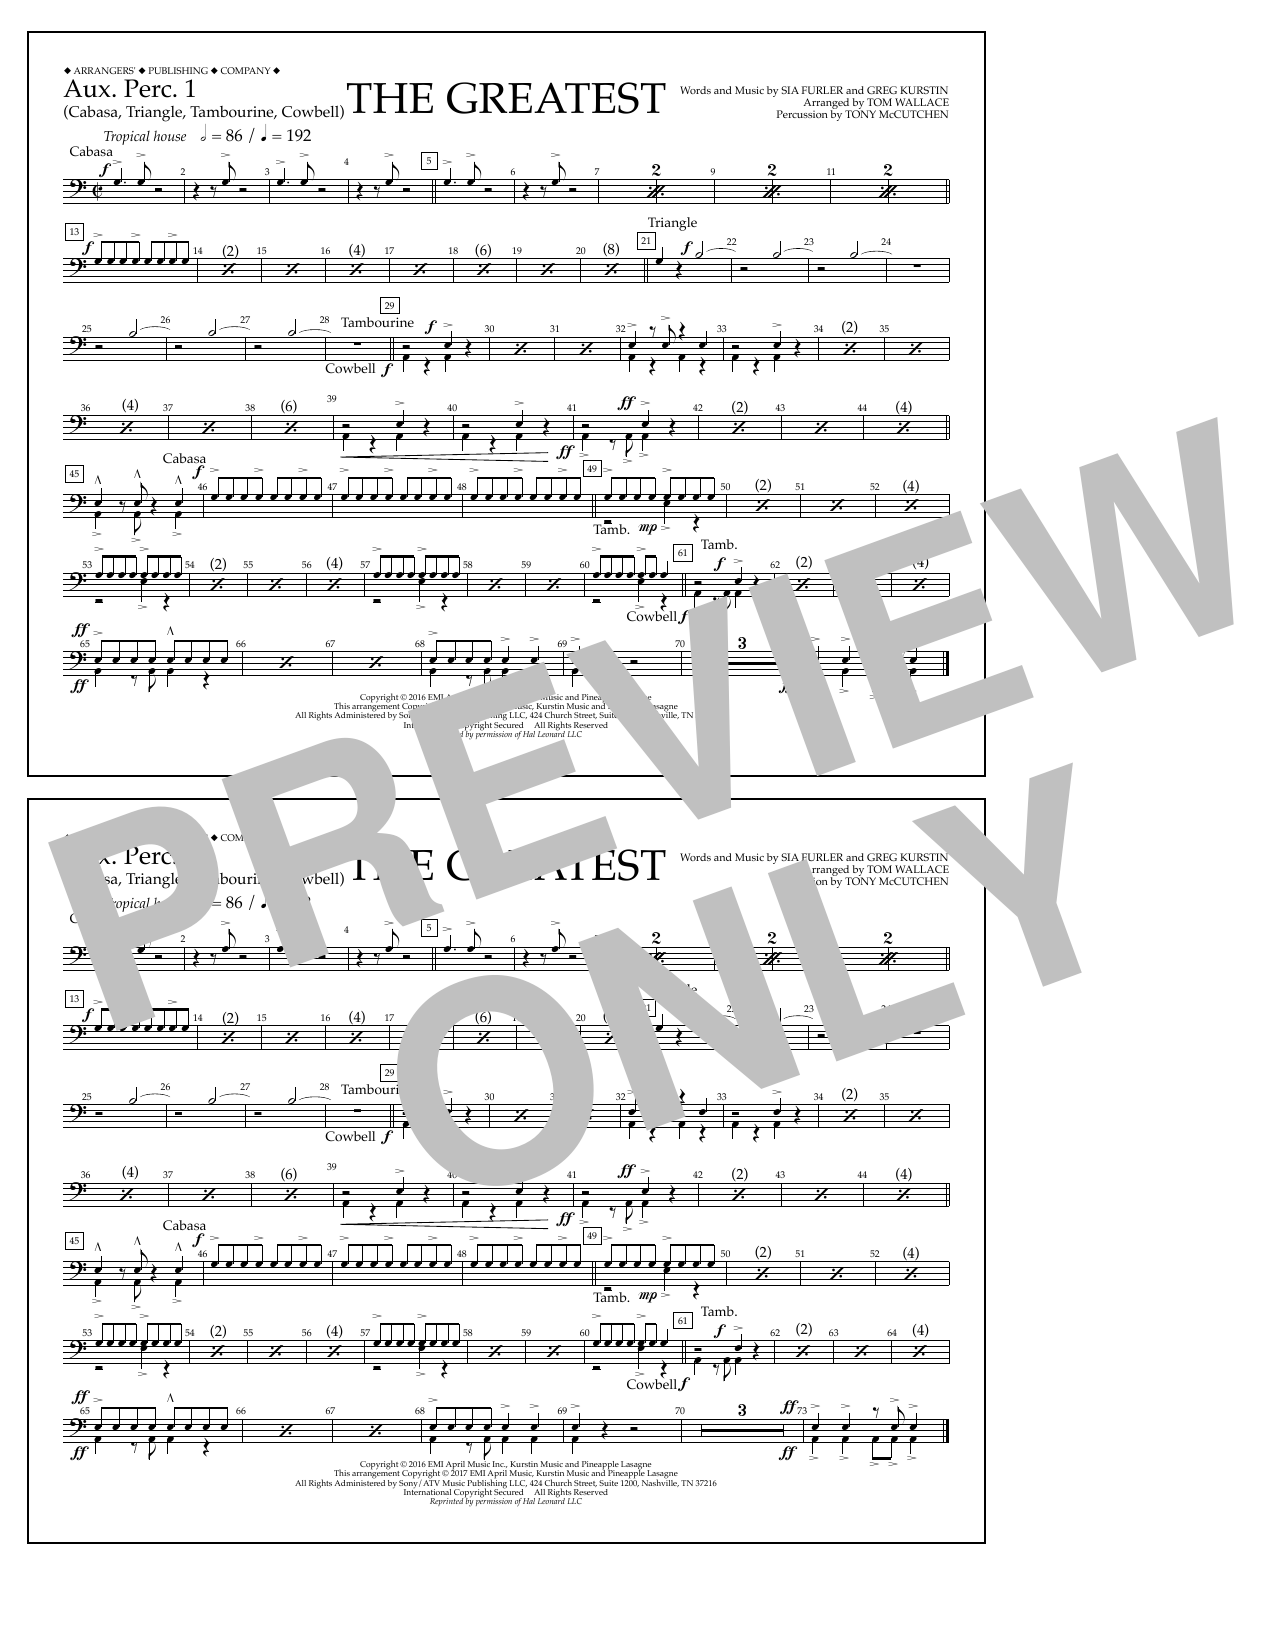 The Greatest - Aux. Perc. 1 Sheet Music